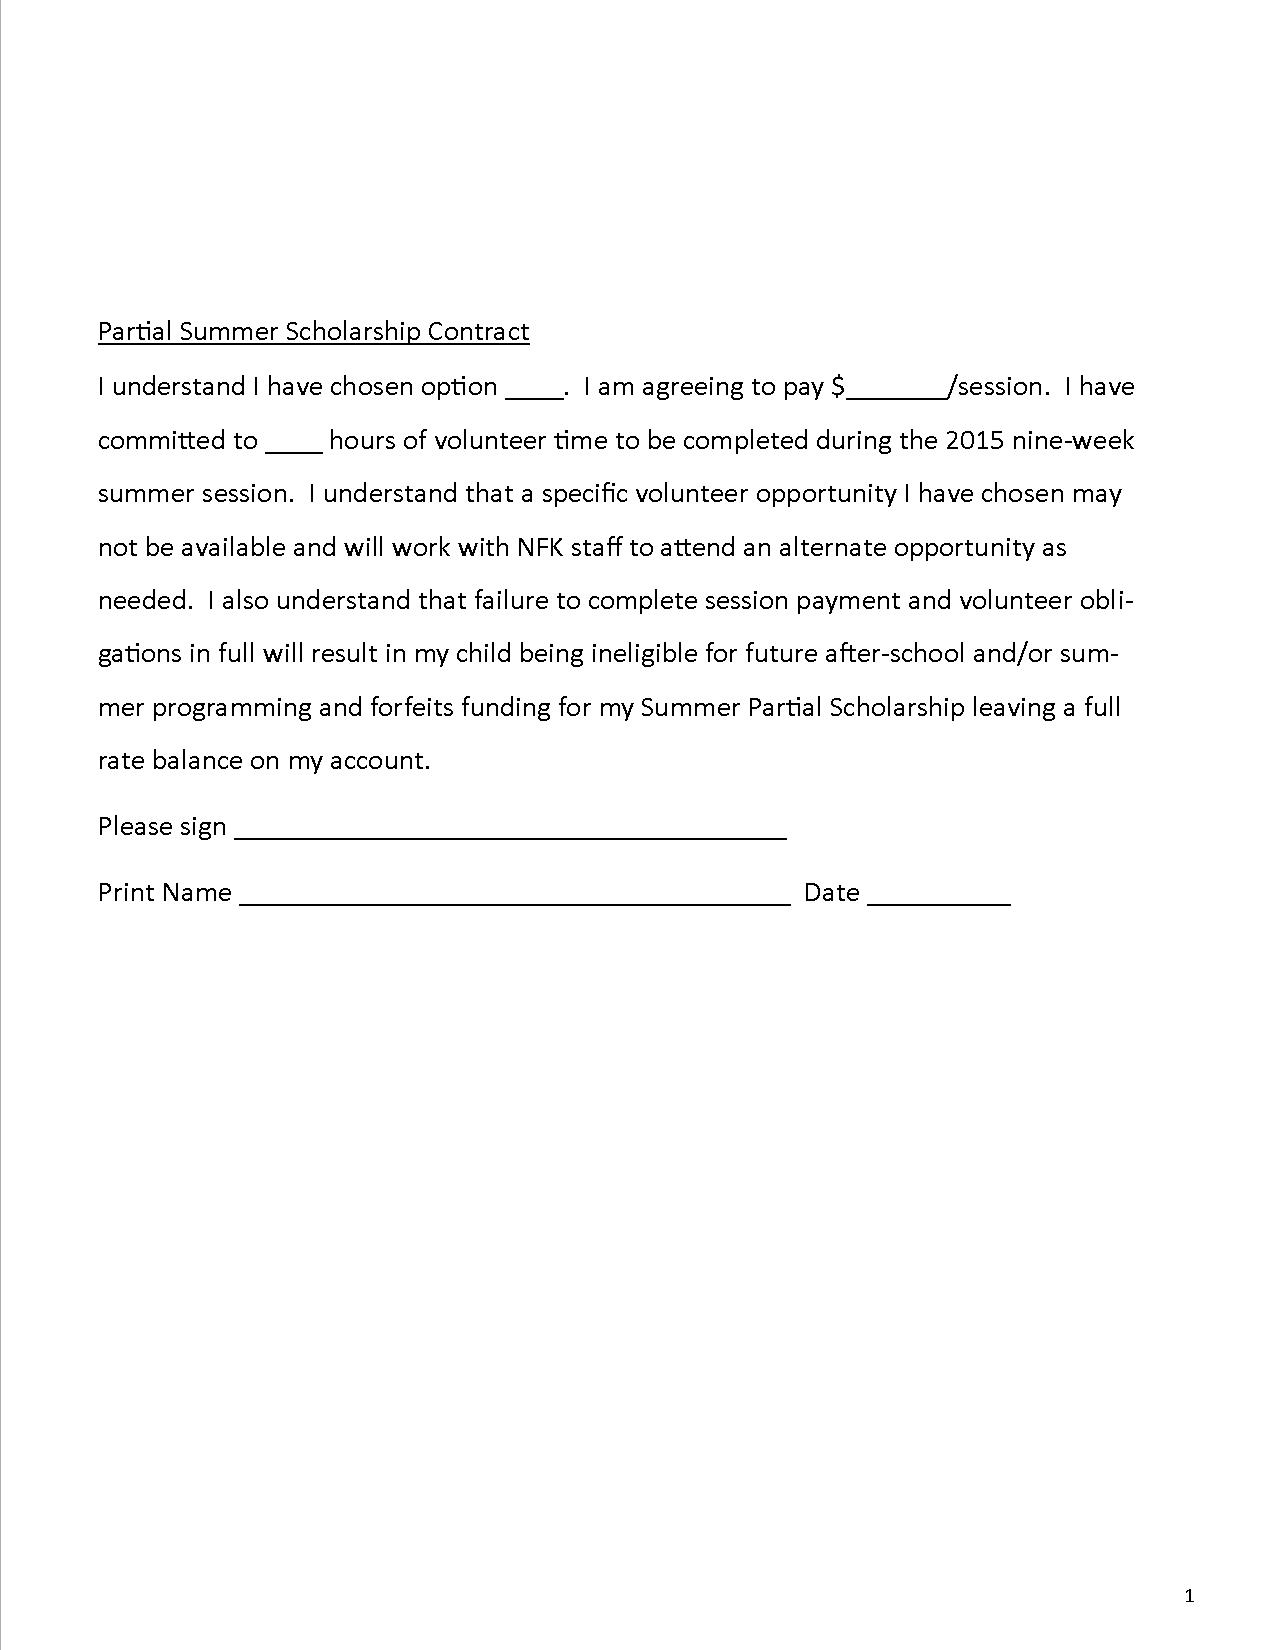 Summer Scholarship Contract p2